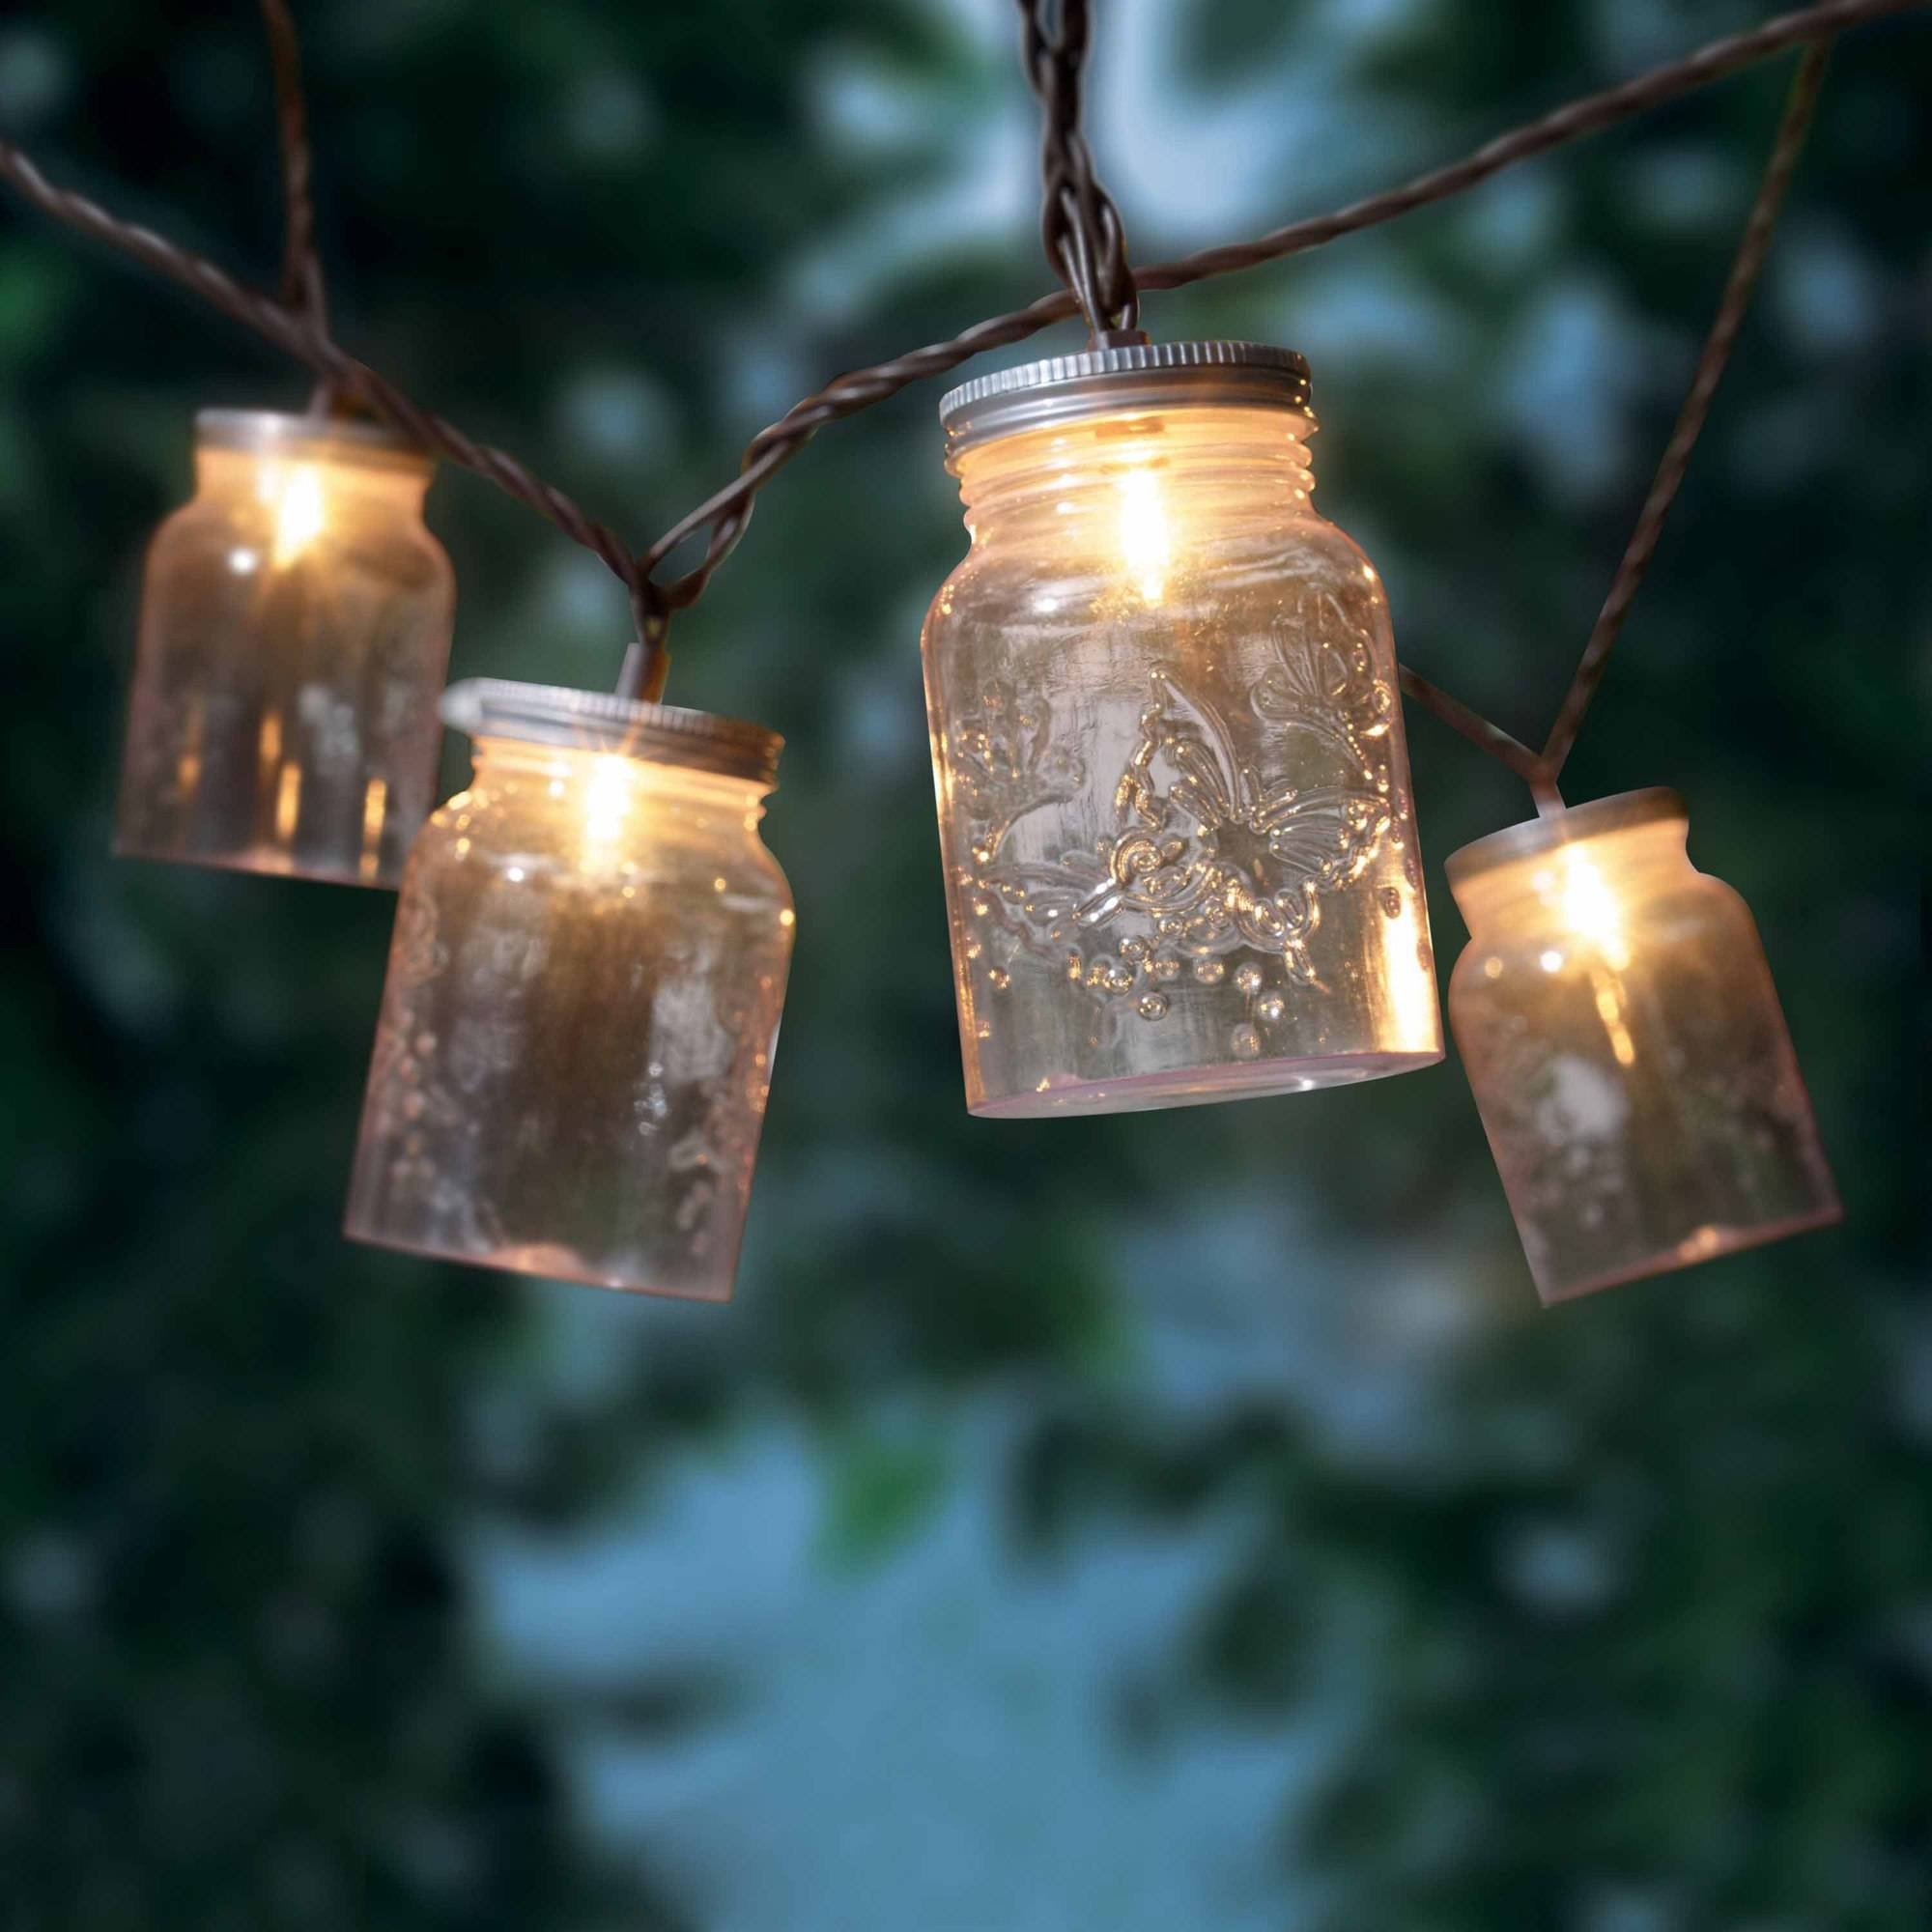 2019 Outdoor Wall Lighting At Walmart Pertaining To Mainstays Mason Jar Mini String Lights, 10 Count – Walmart (Gallery 15 of 20)